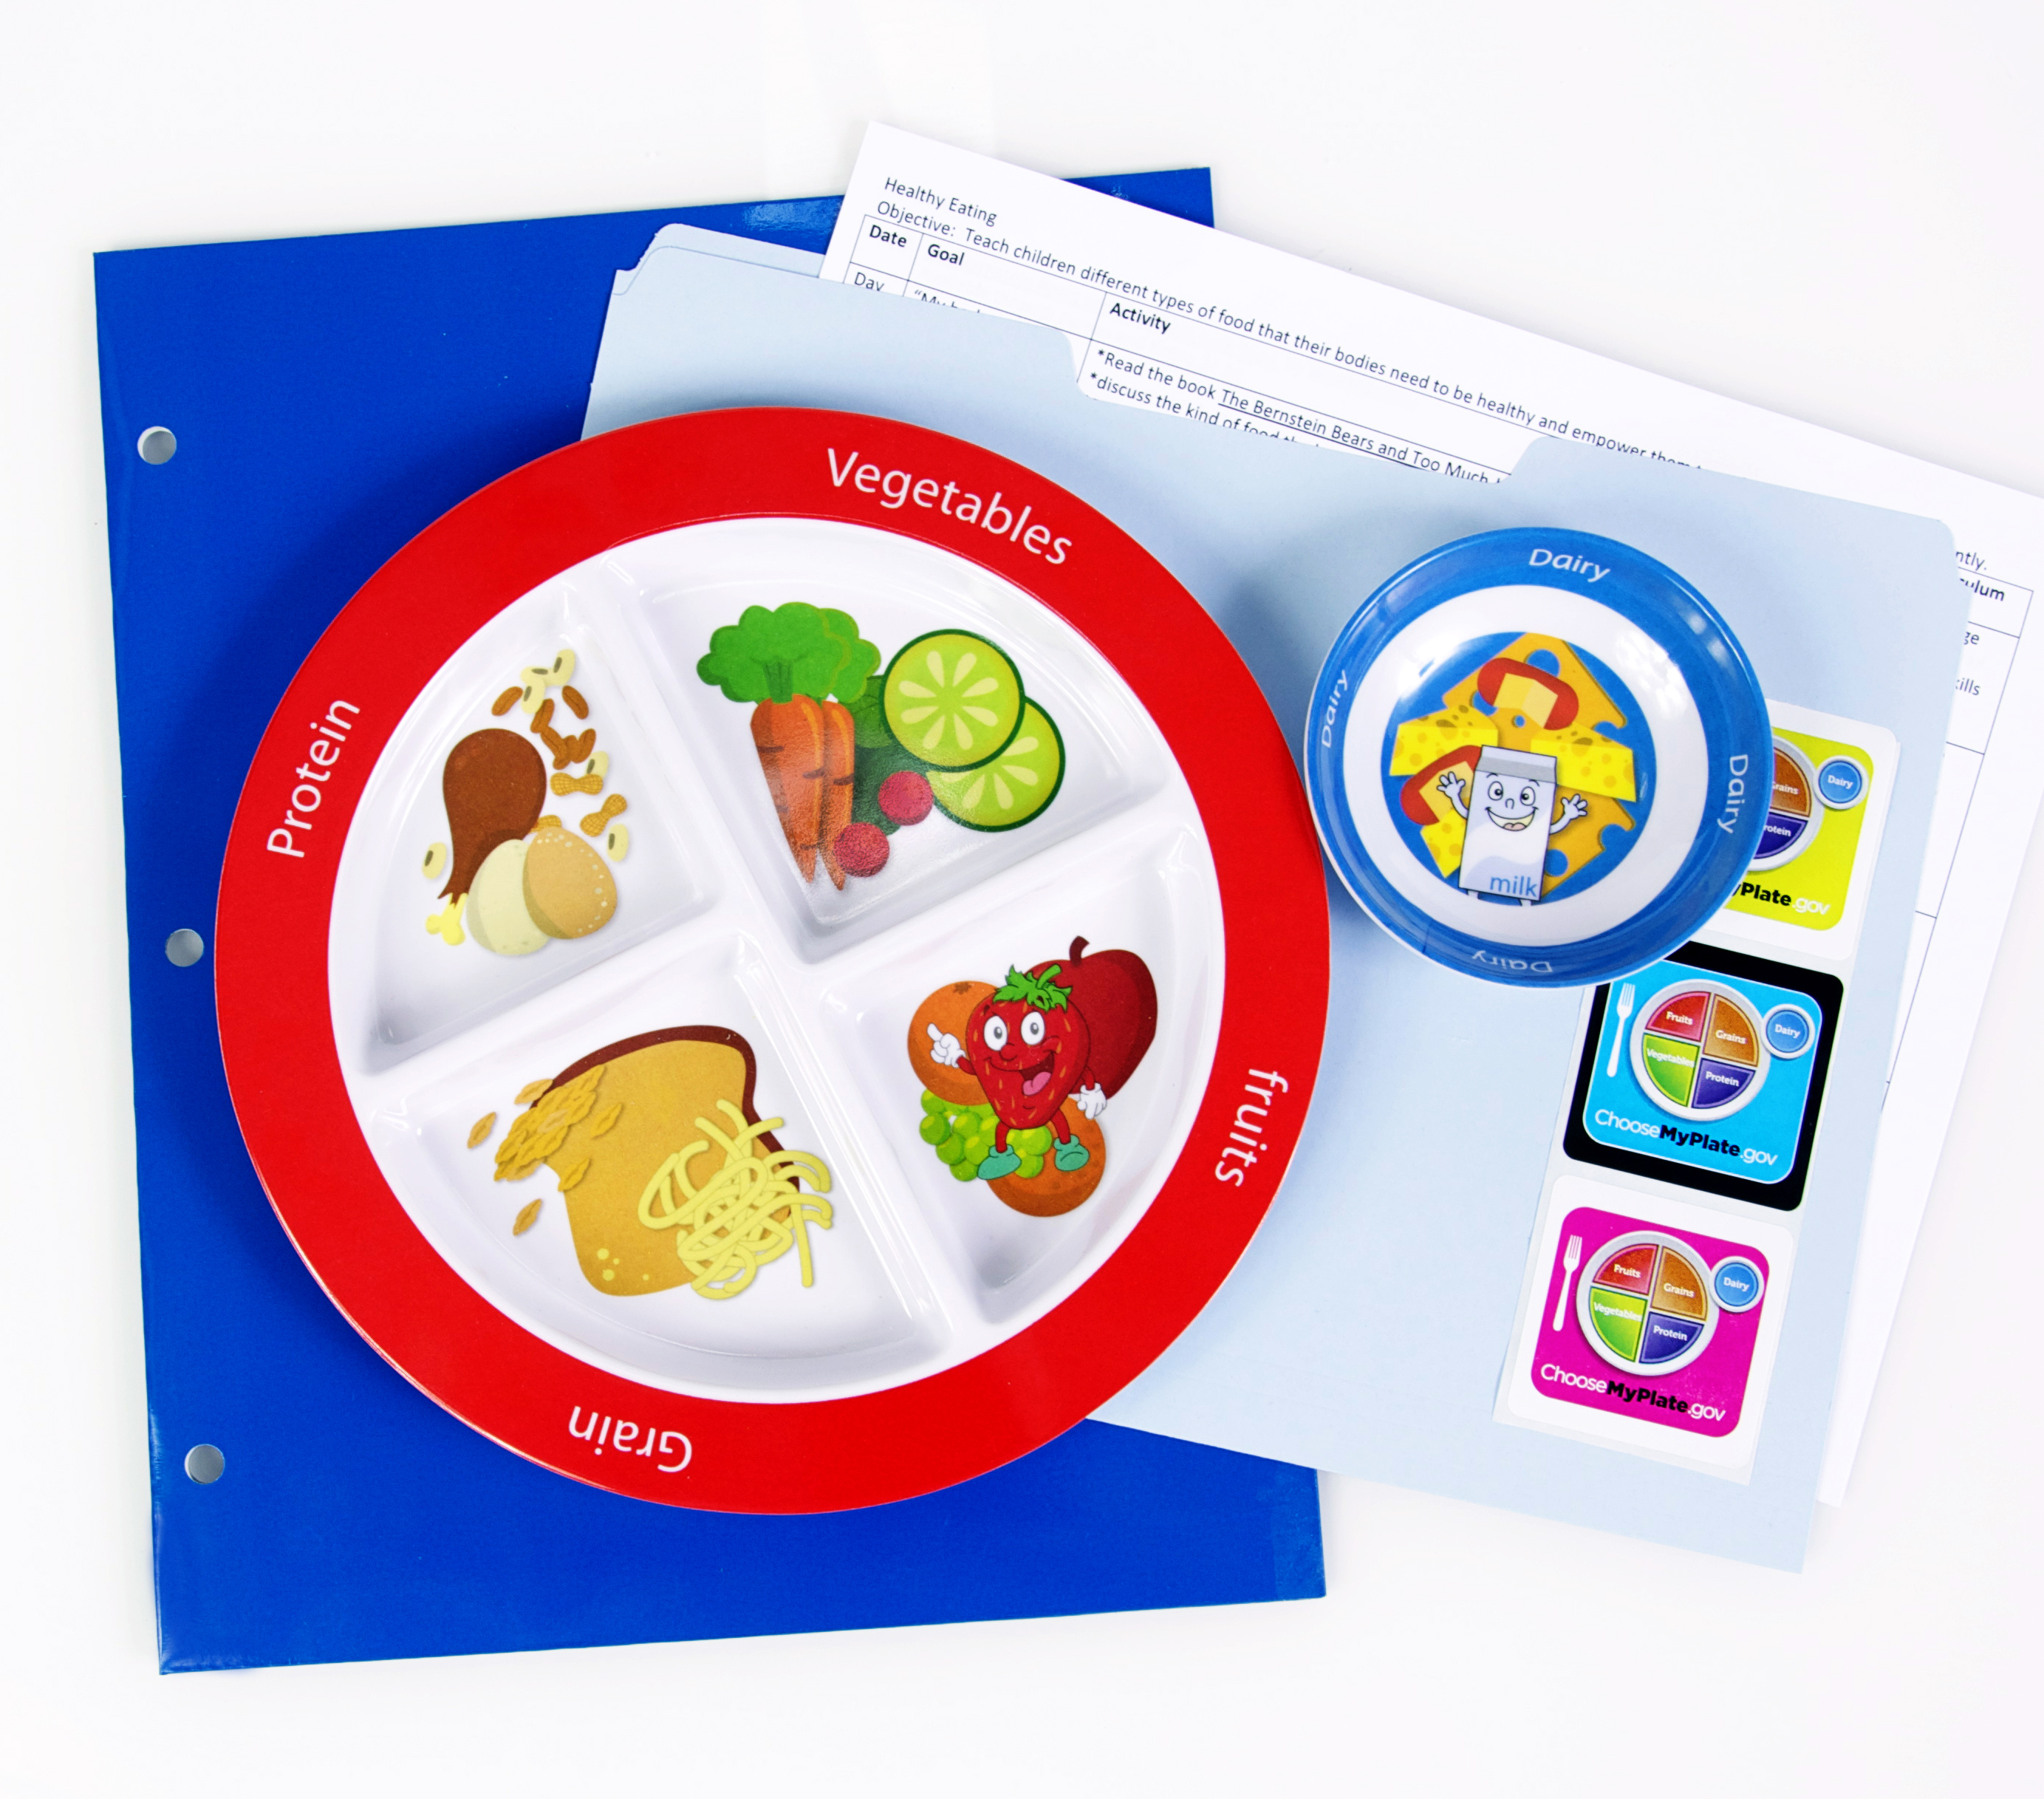 Food And Nutrition Activities For Preschoolers Fb further Dc F D C D Fe Cb Healthy Kids Healthy Habits together with Aa B D Bbd F E D Healthy Junk Healthy Kids also Whats Your Plate furthermore Cac F Bbc Dab B E. on health my plate lessons